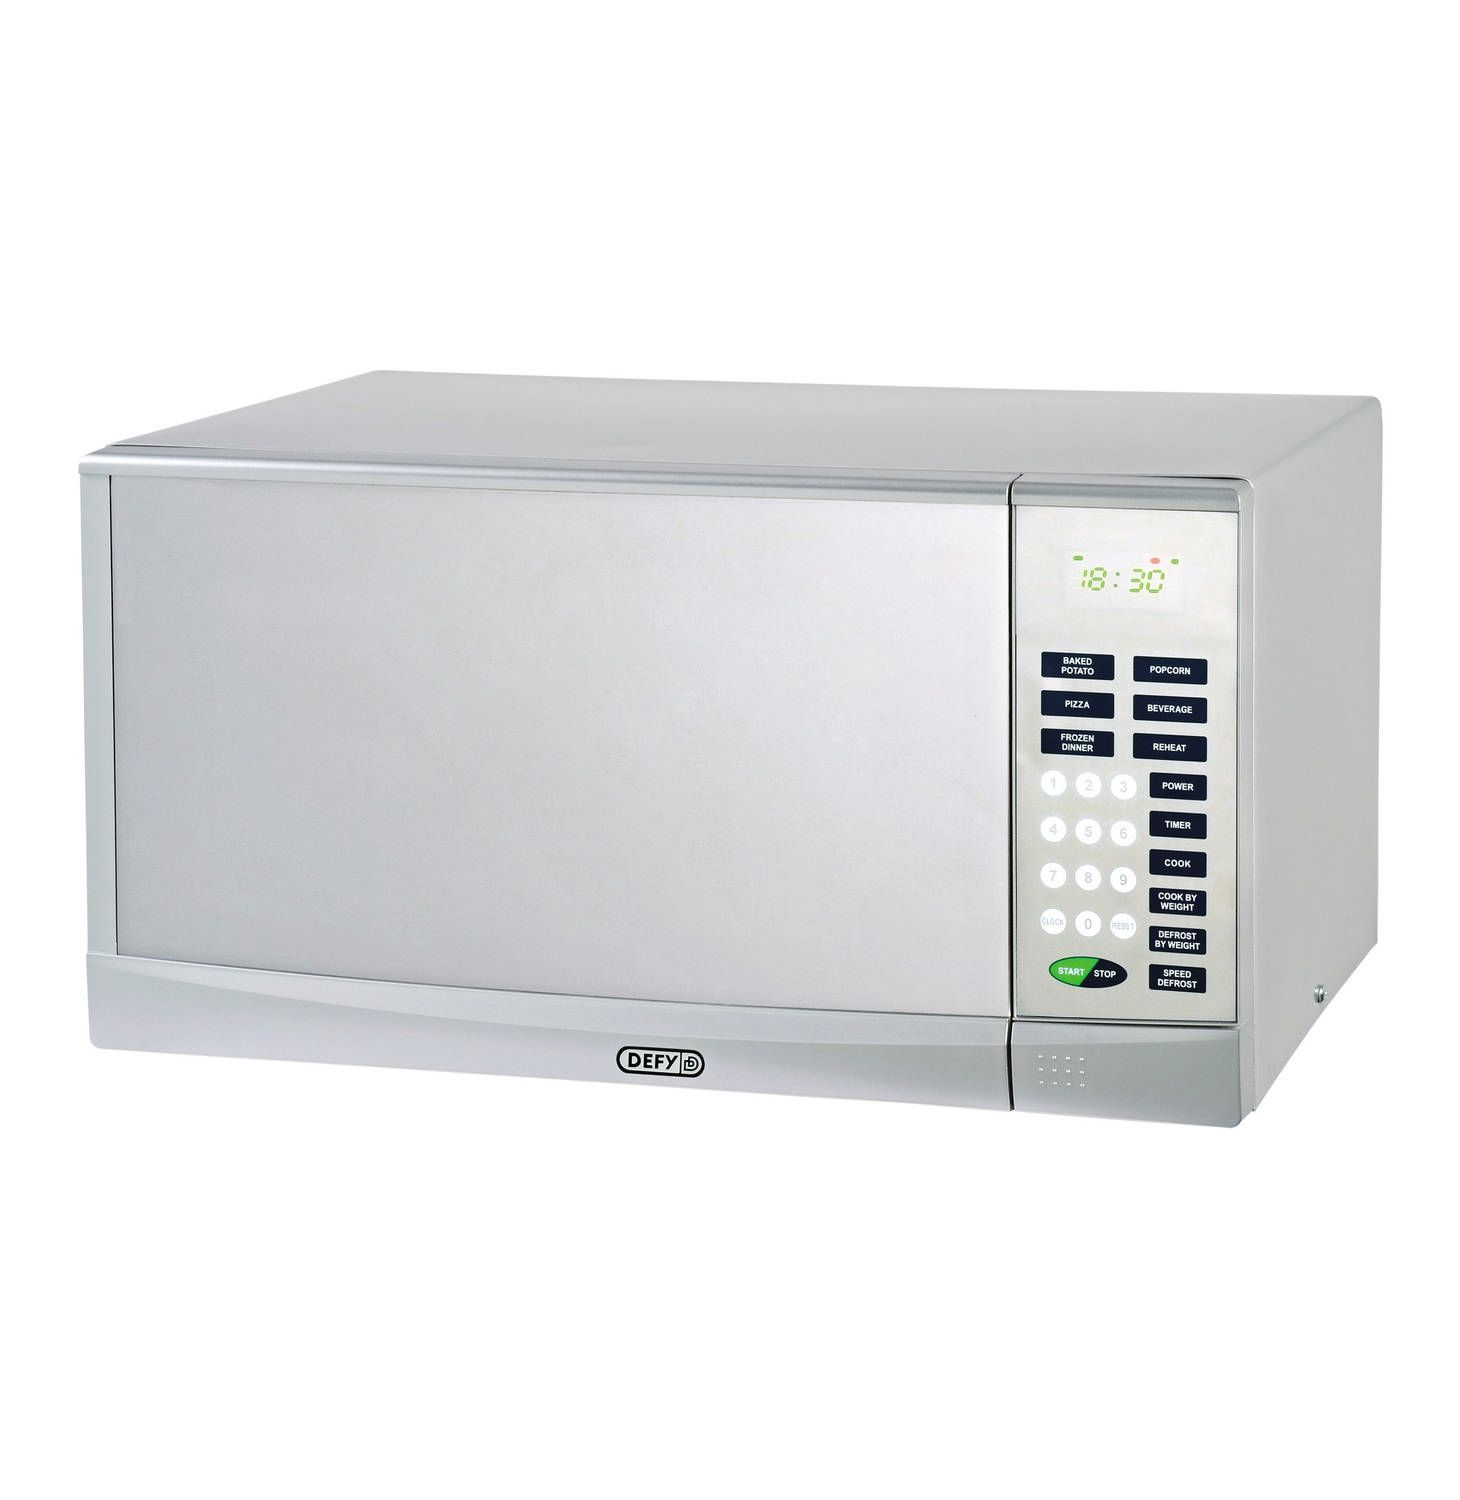 Defy 28 L Electronic Microwave Oven